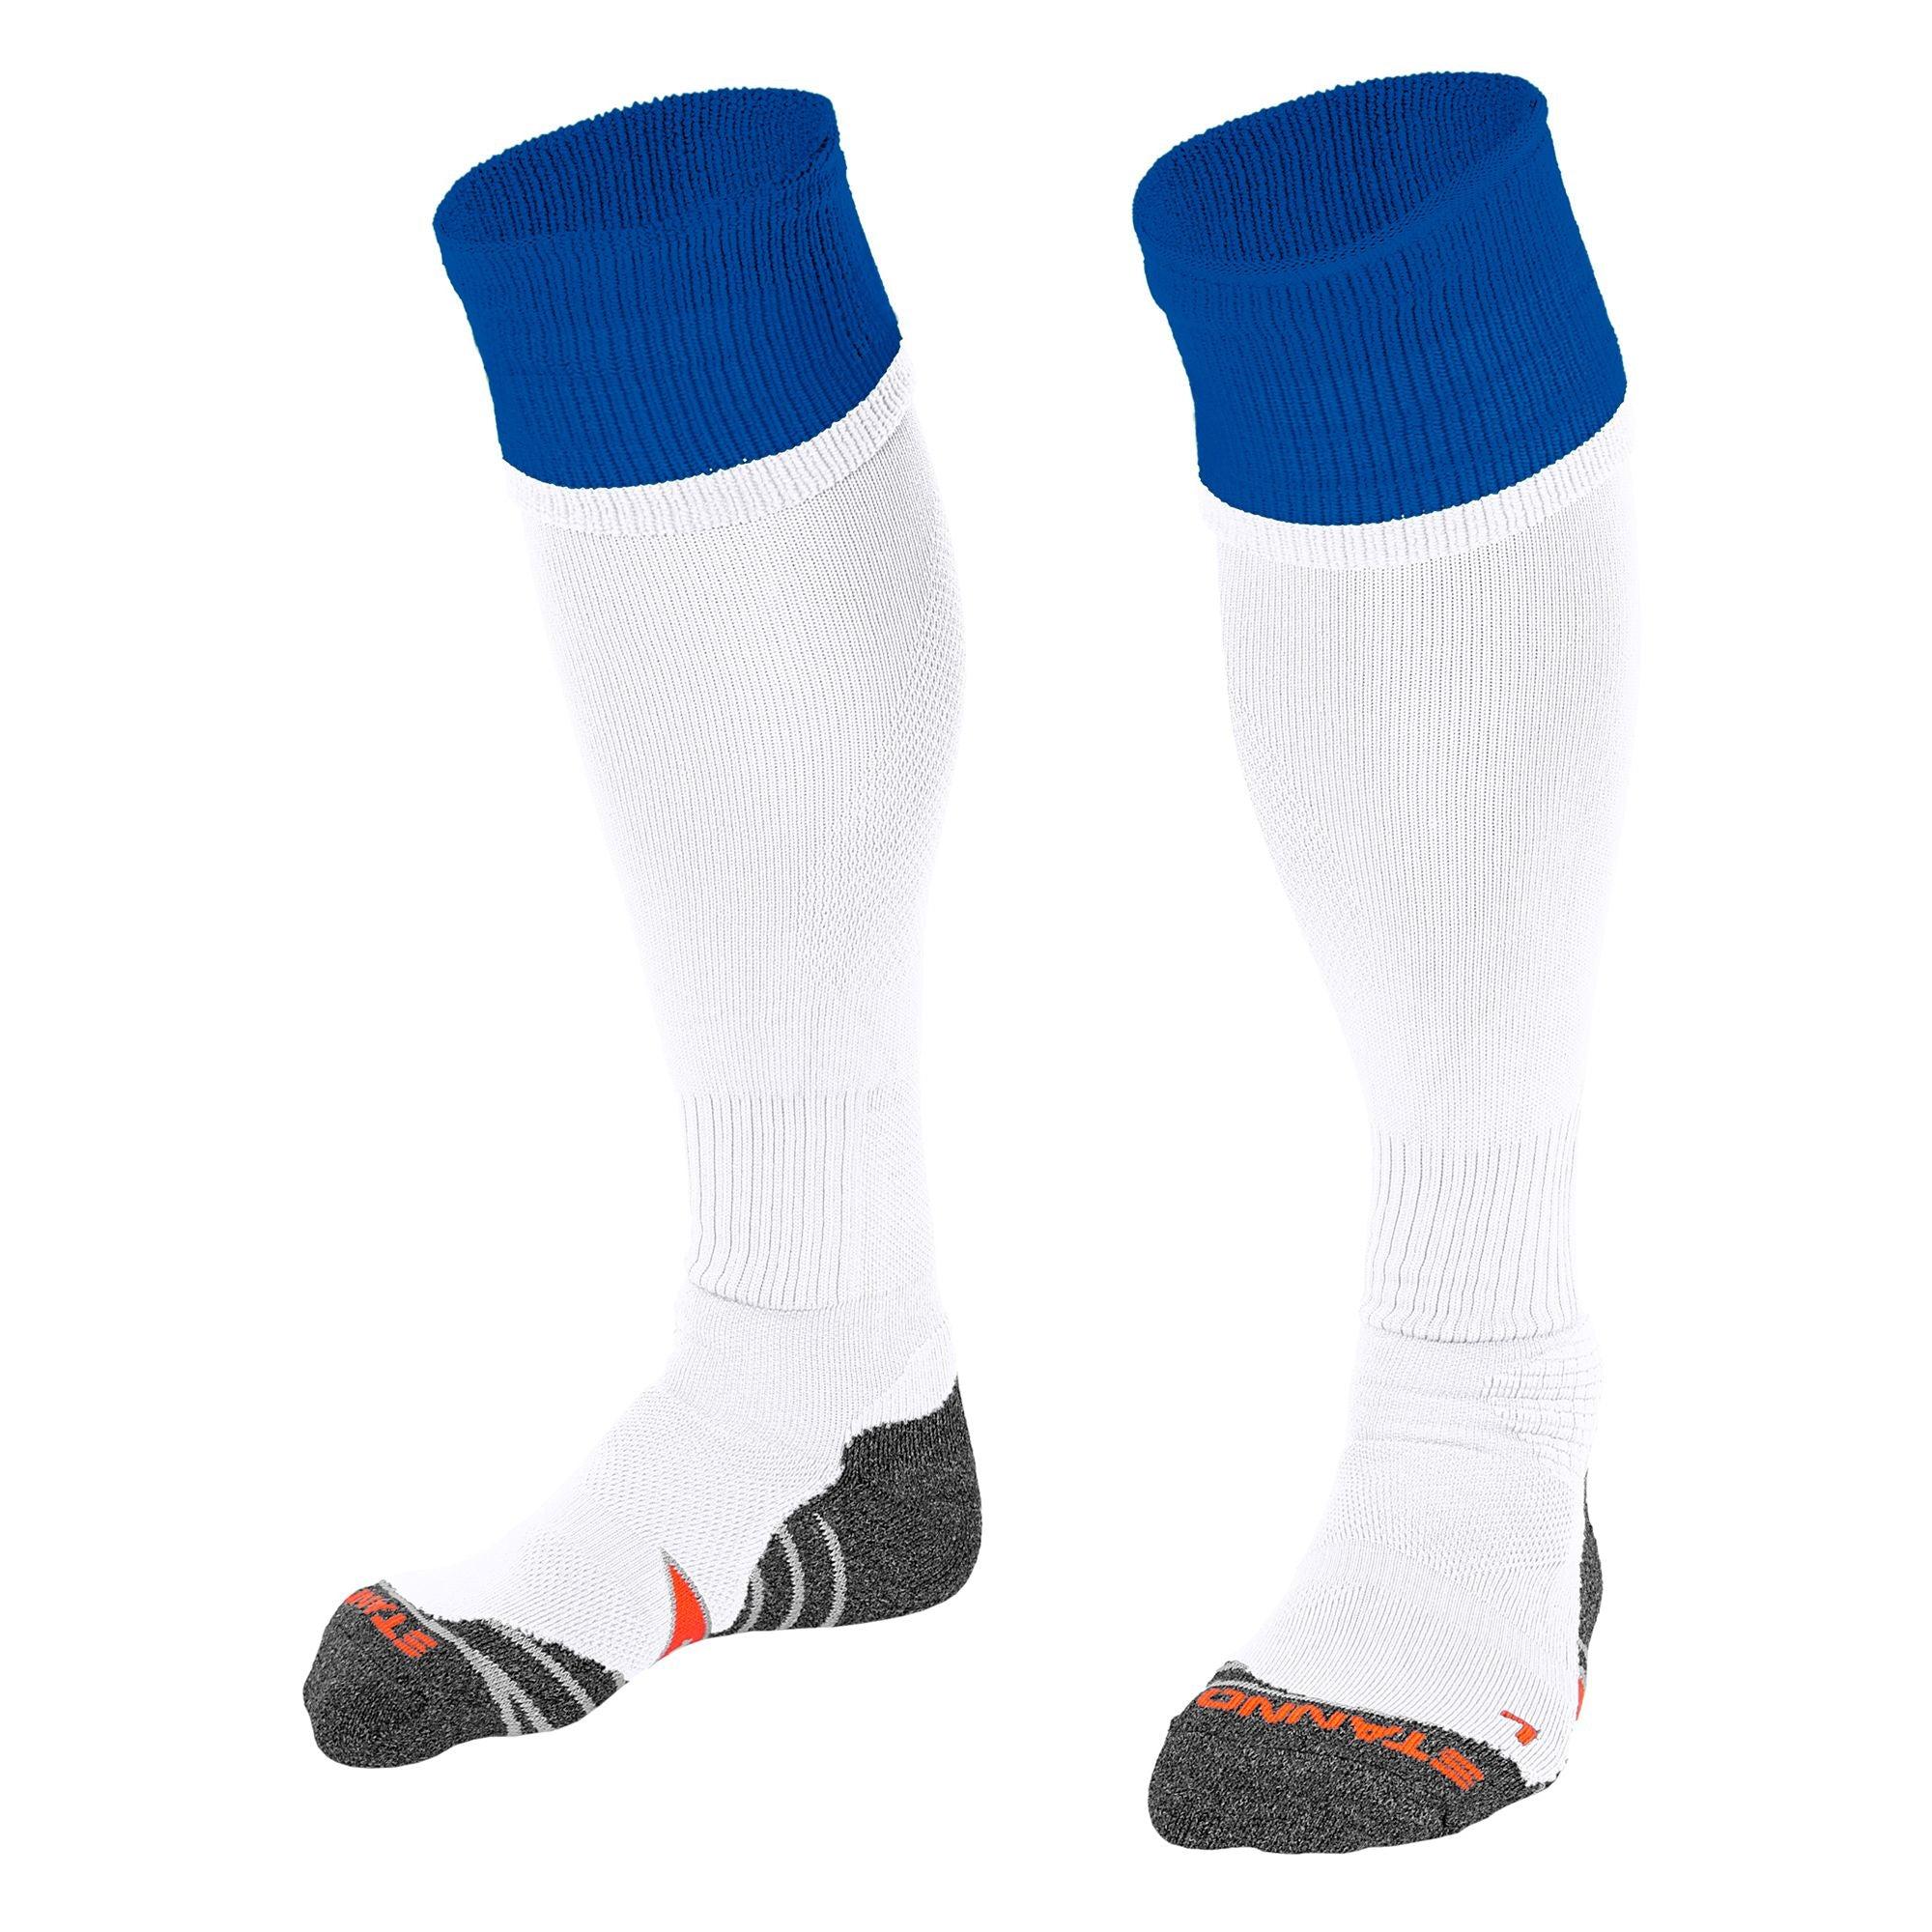 Stanno Combi Sock in white with royal blue contrast tops